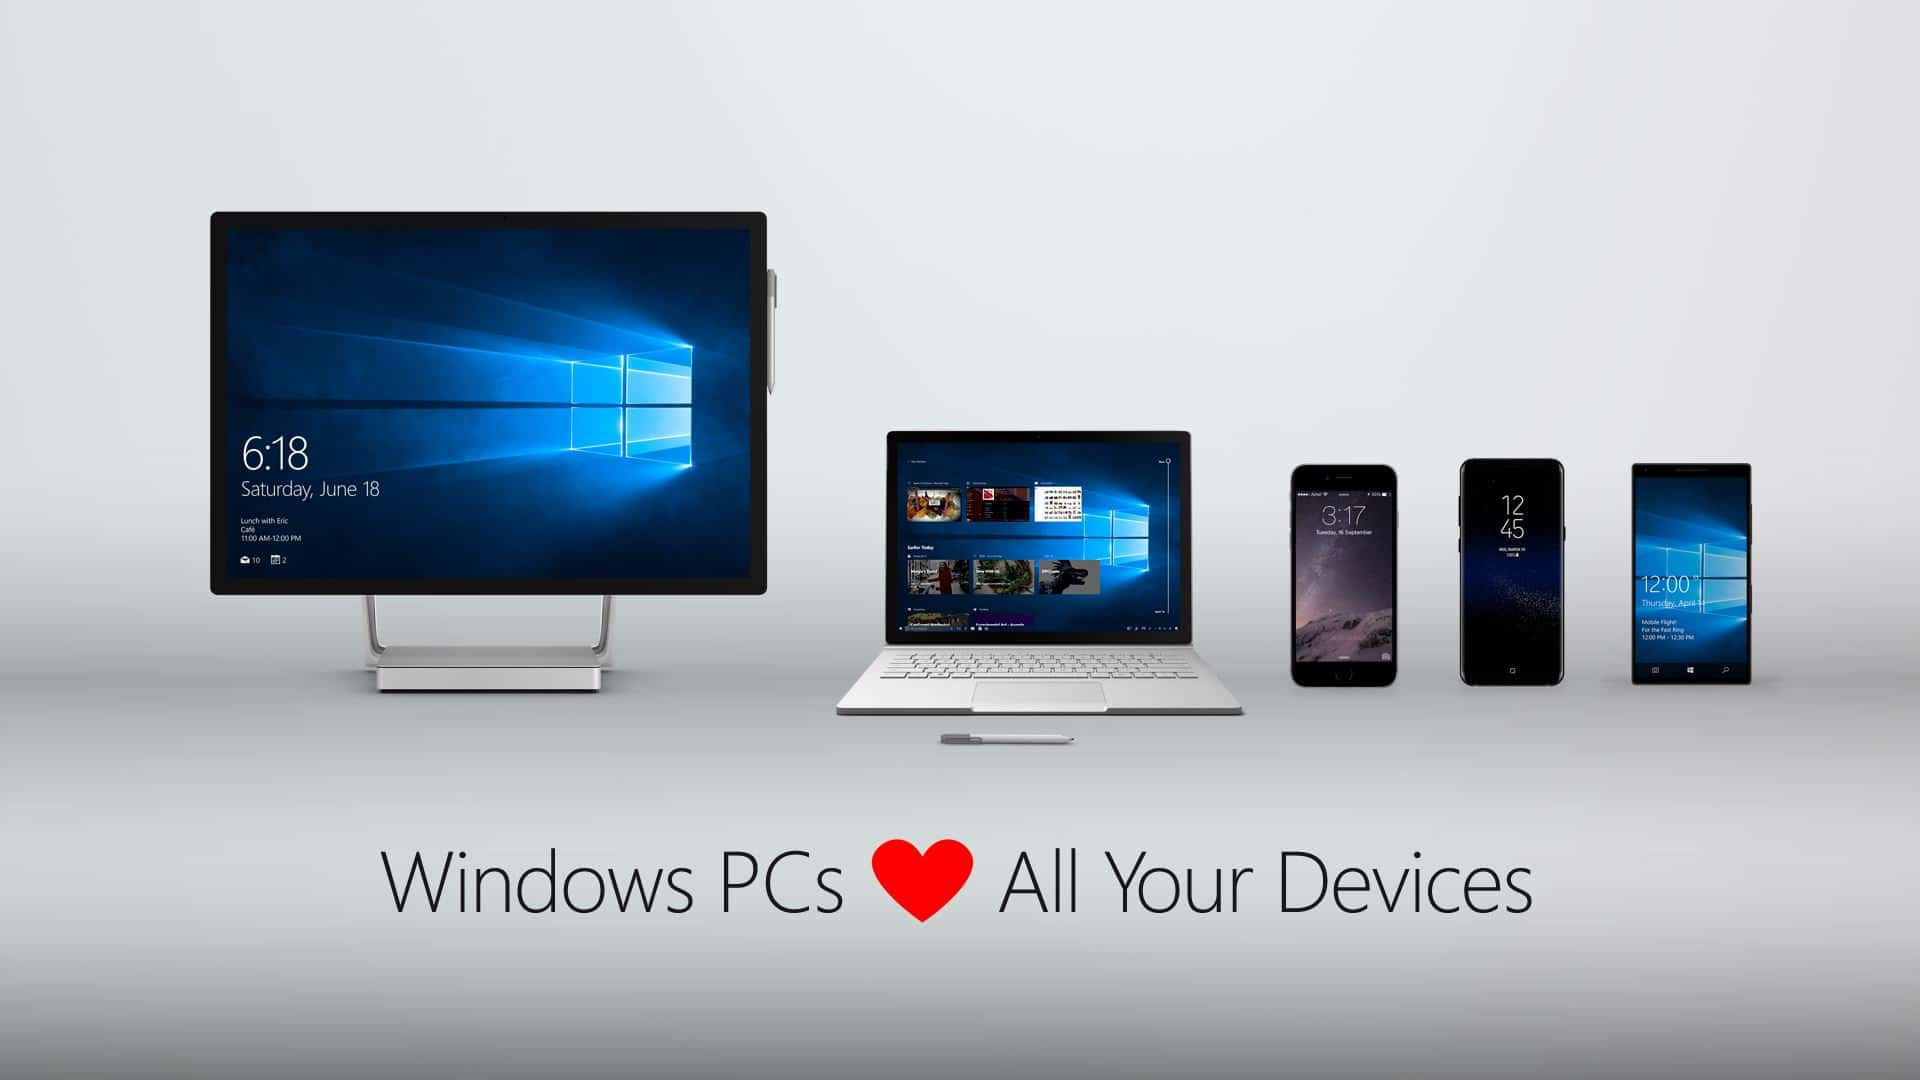 Windows loves all your devices